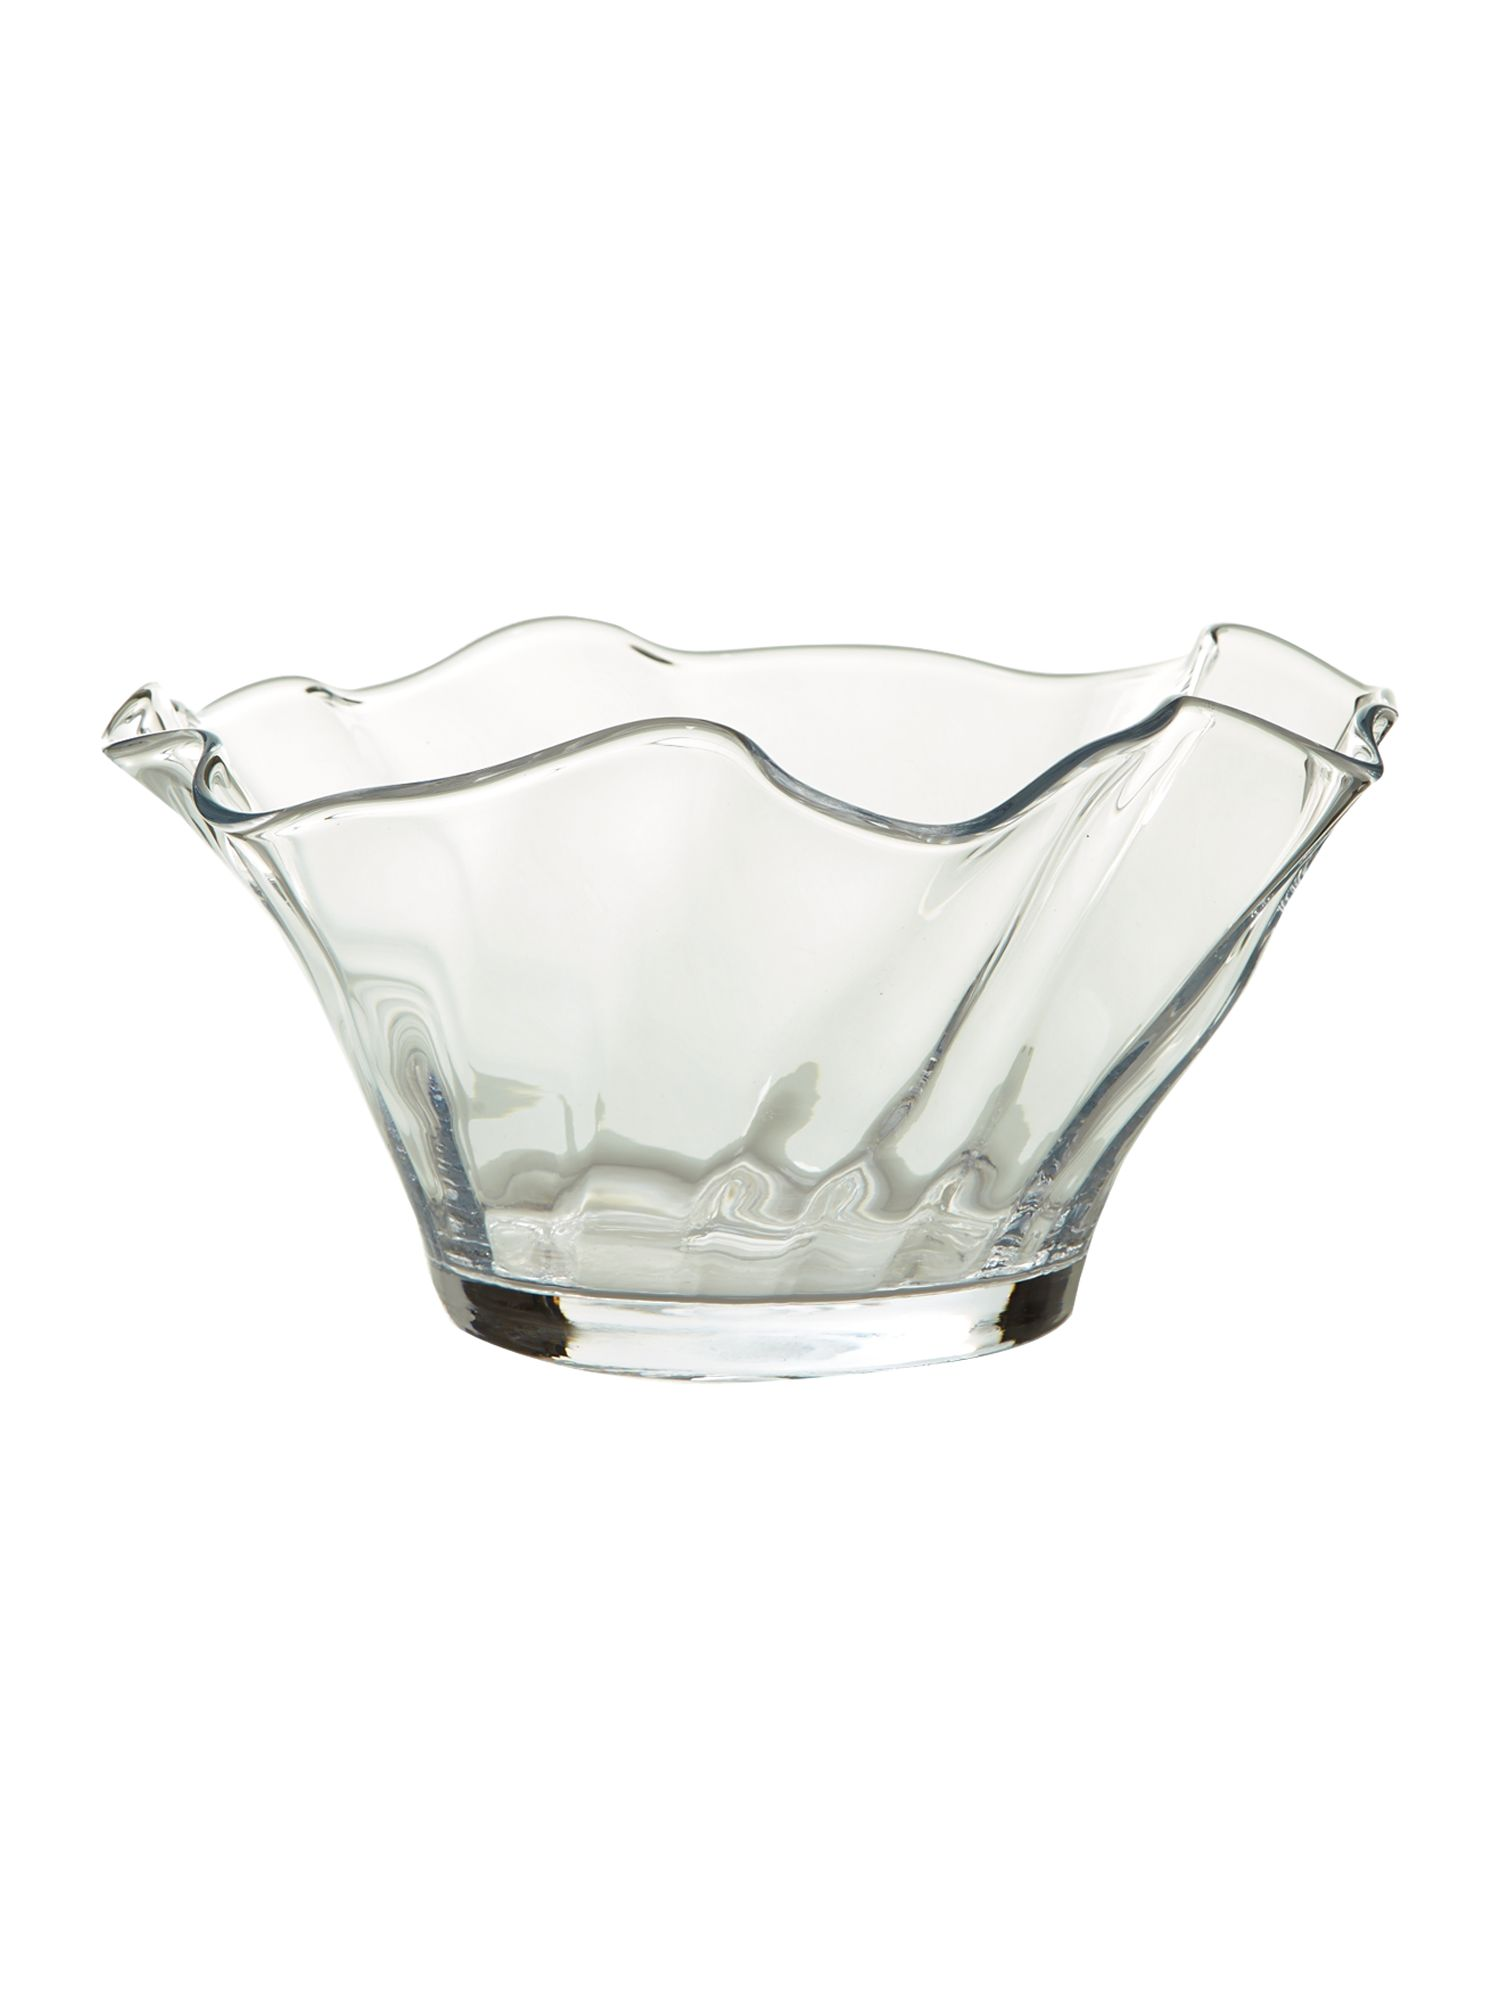 Optic handkerchief bowl, clear